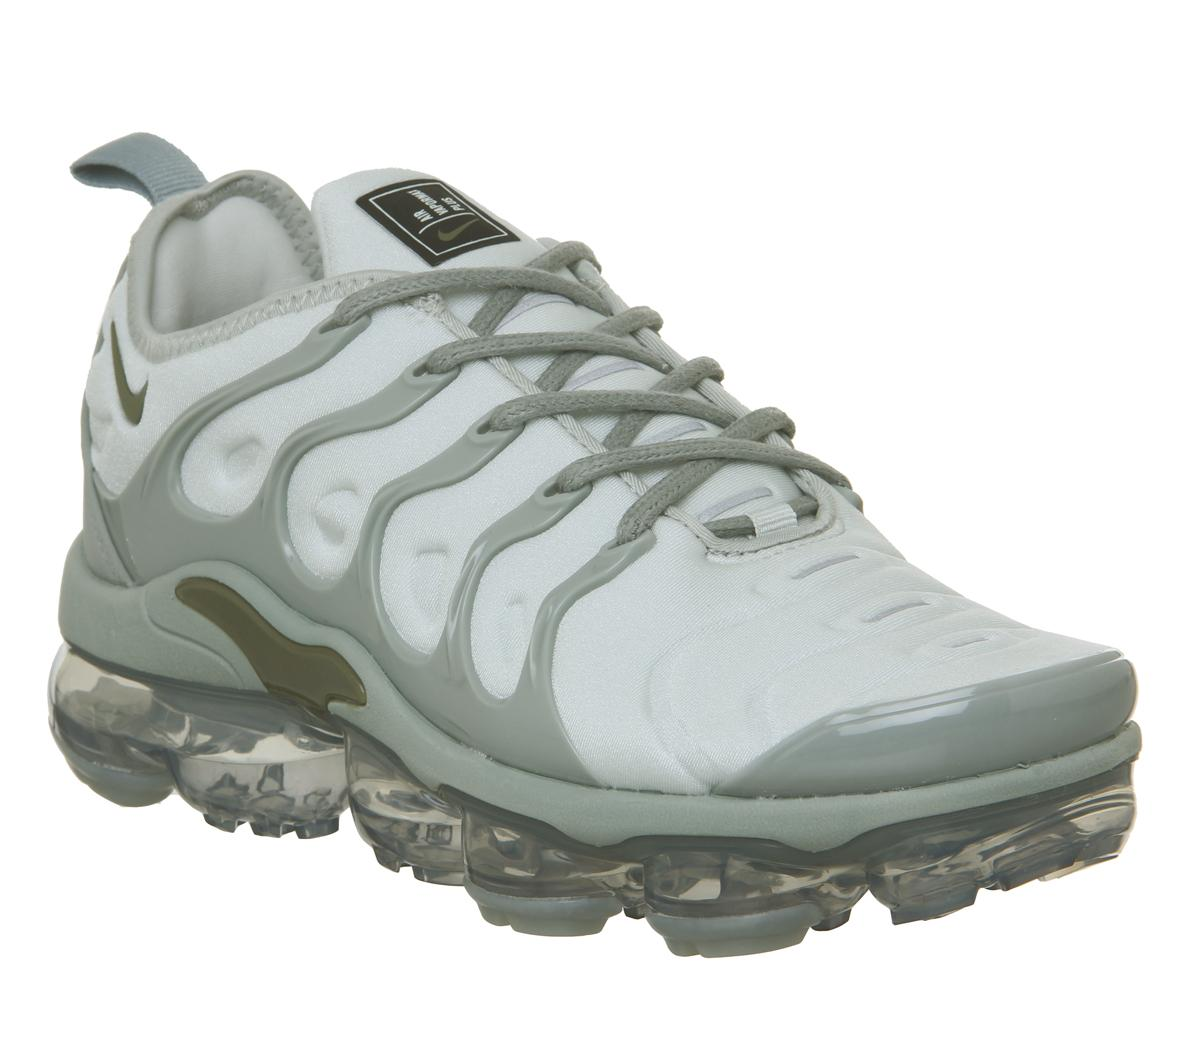 timeless design bf3f0 67904 Womens Nike Air Vapormax Plus Medium Olive Mica Green Reflective Silver Uk  Size 7